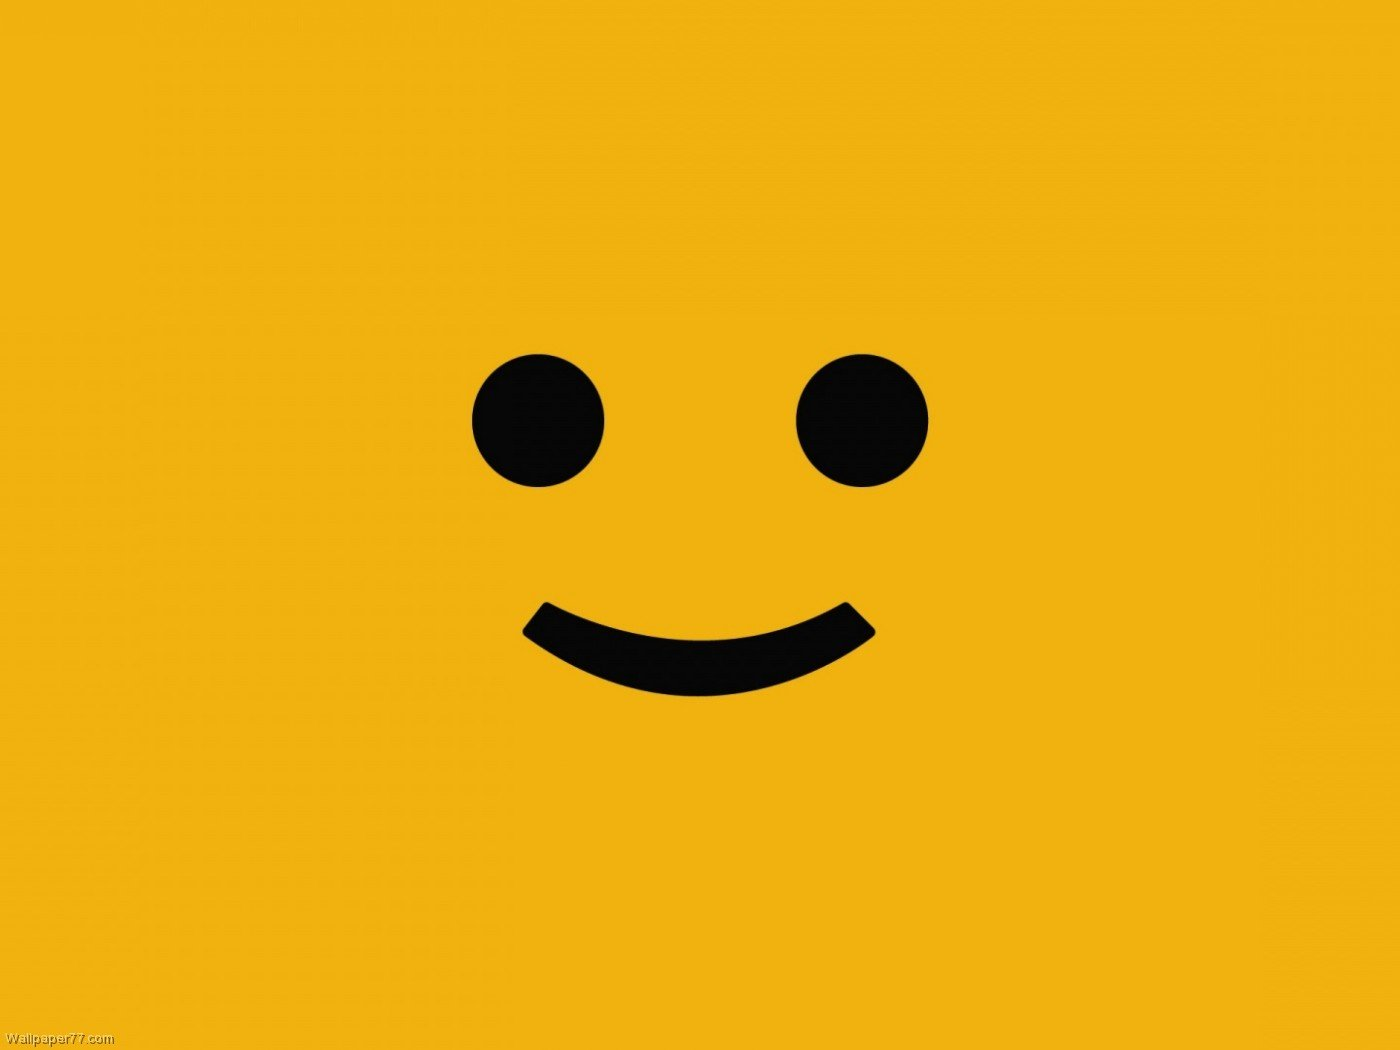 smiley face background cute fun wallpapers funny wallpapers 1400x1050 1400x1050